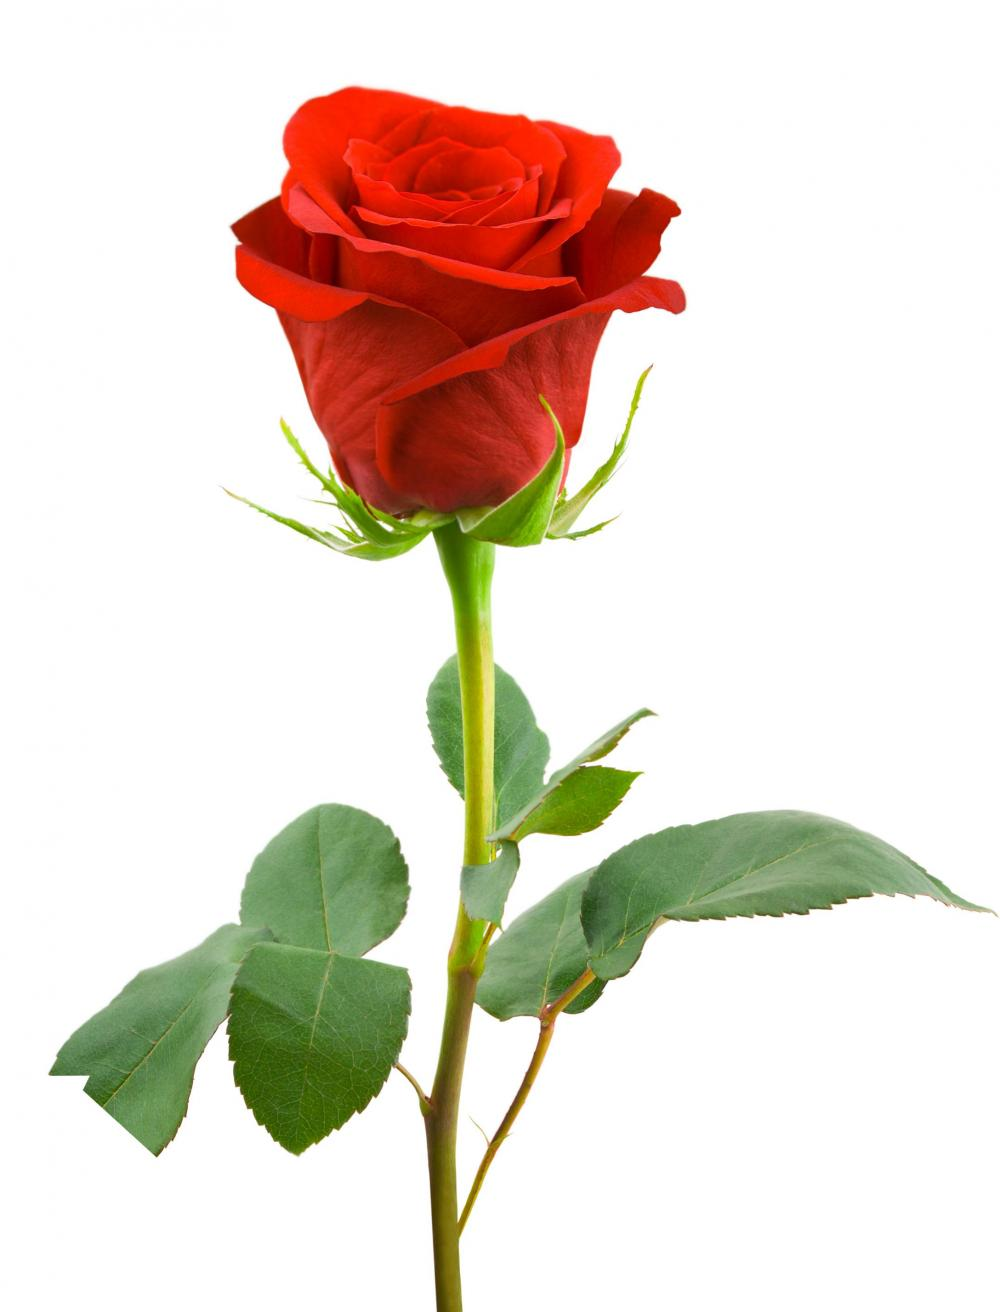 Anime One Red Rose Stalk